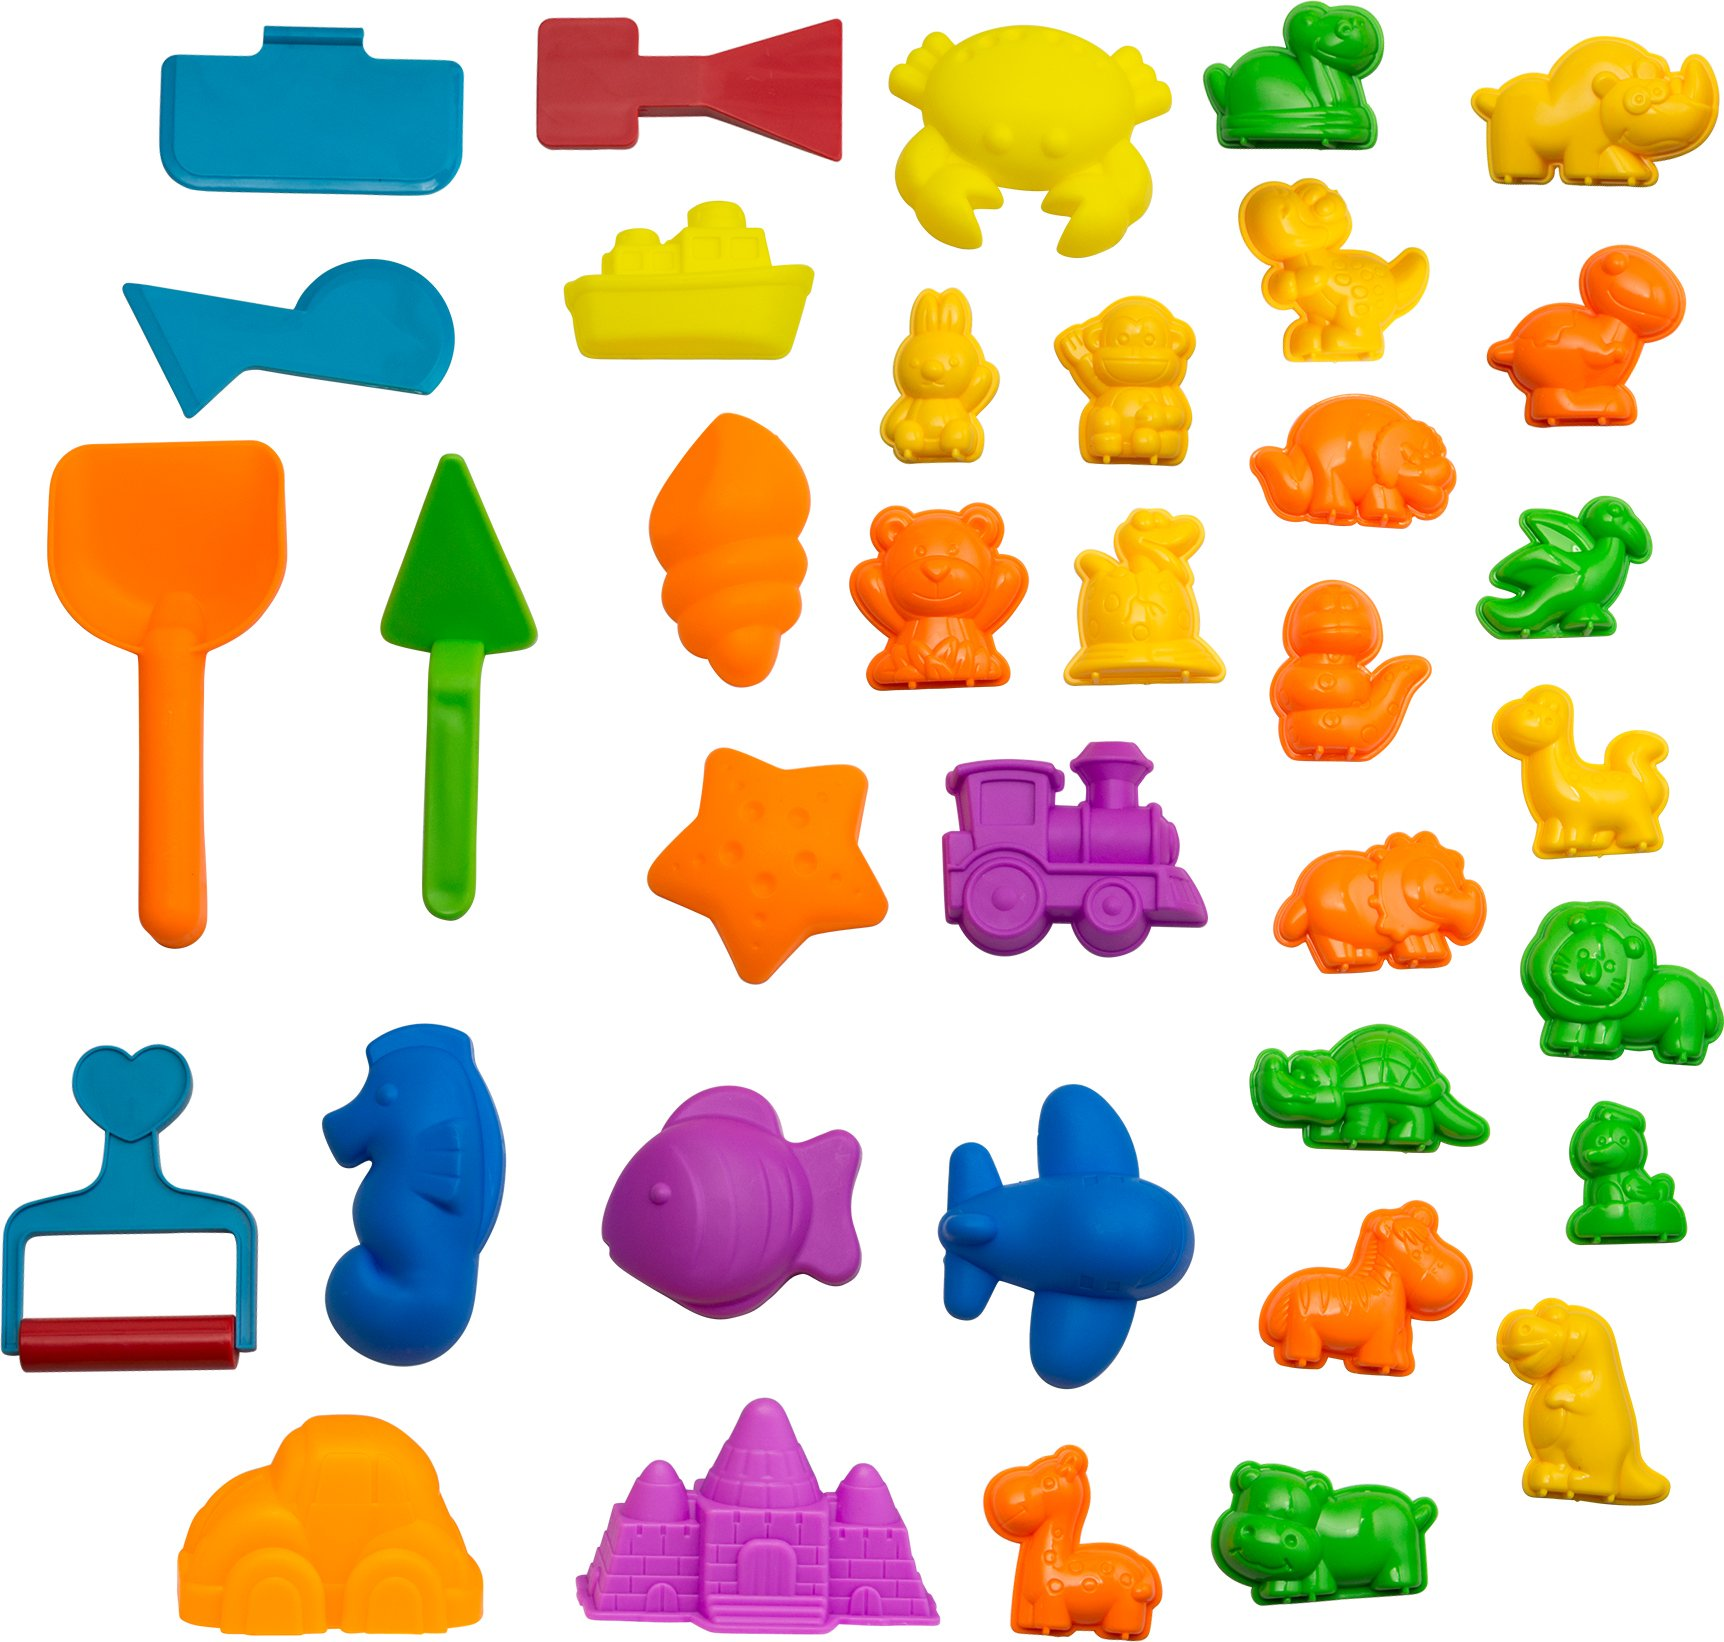 CoolSand Animal Sand Molds and Tools Kit (36 Pcs) - Works with All Other Play Sand Brands - Includes: 10 Dinosaurs, 10 Animals and 12 Beach Molds, and 4 Tools - Sand Not Included by CoolSand